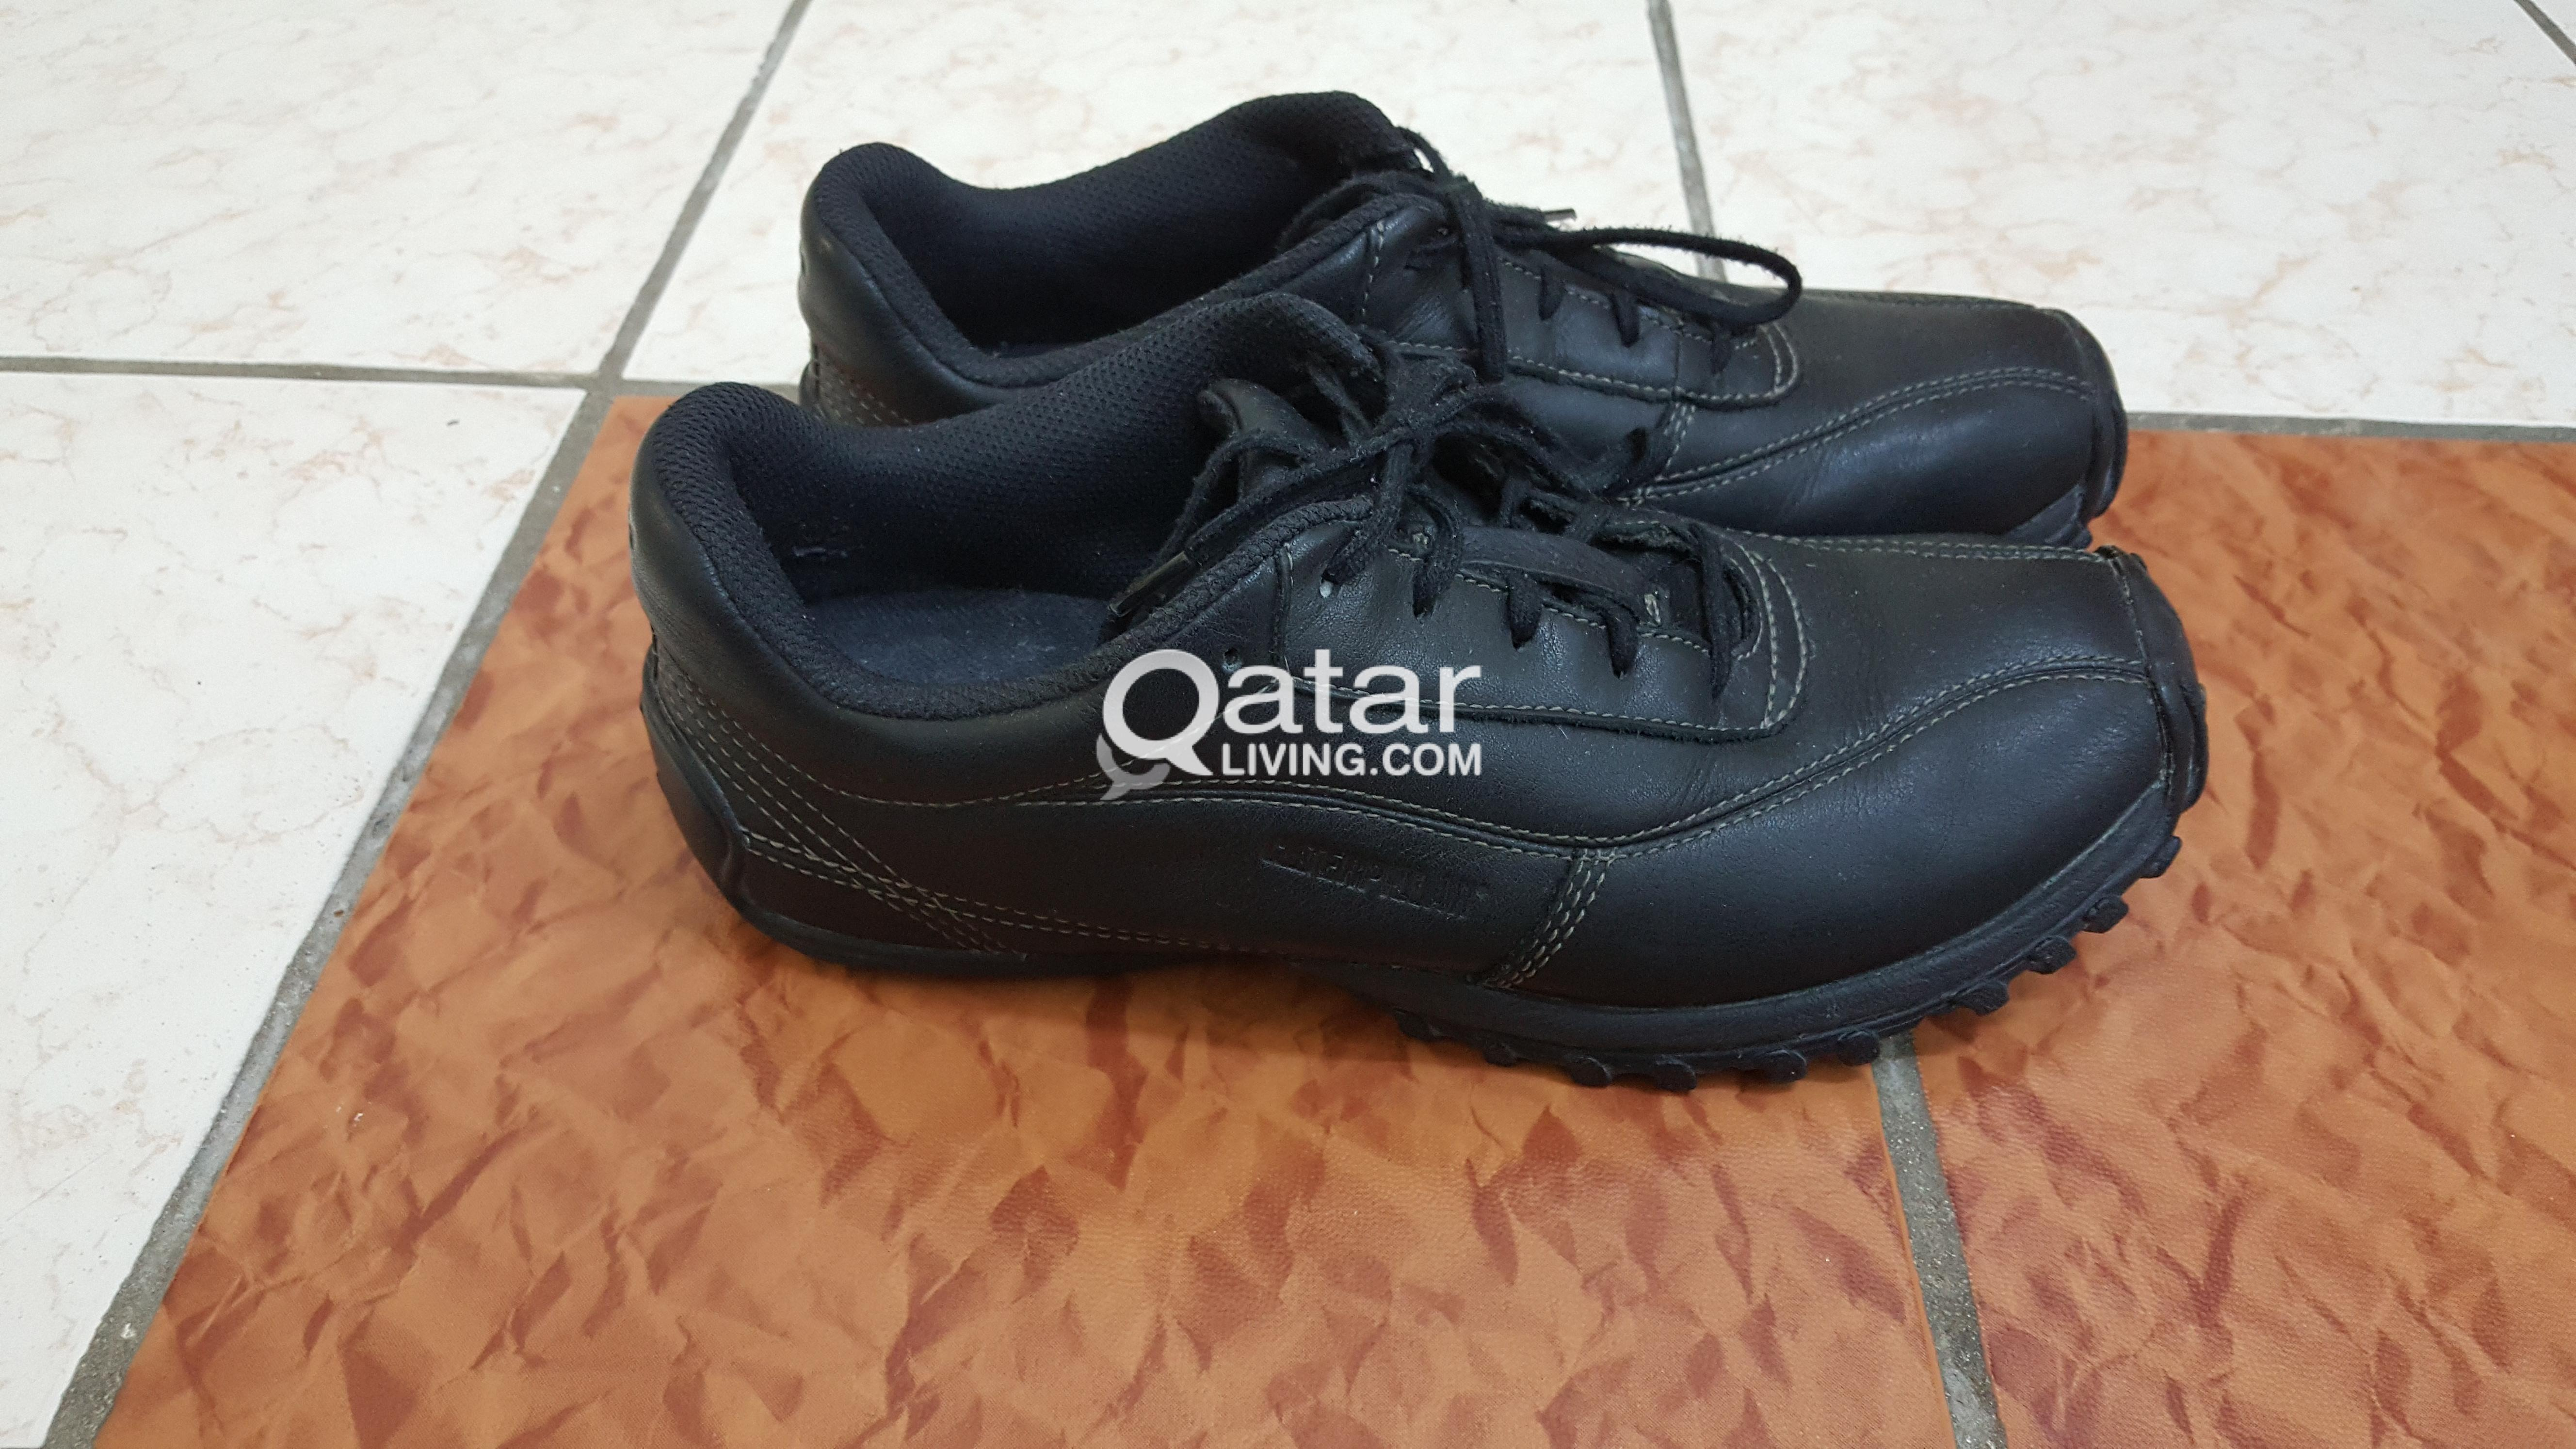 Caterpillar Shoes Vietnam Size 43 Eur